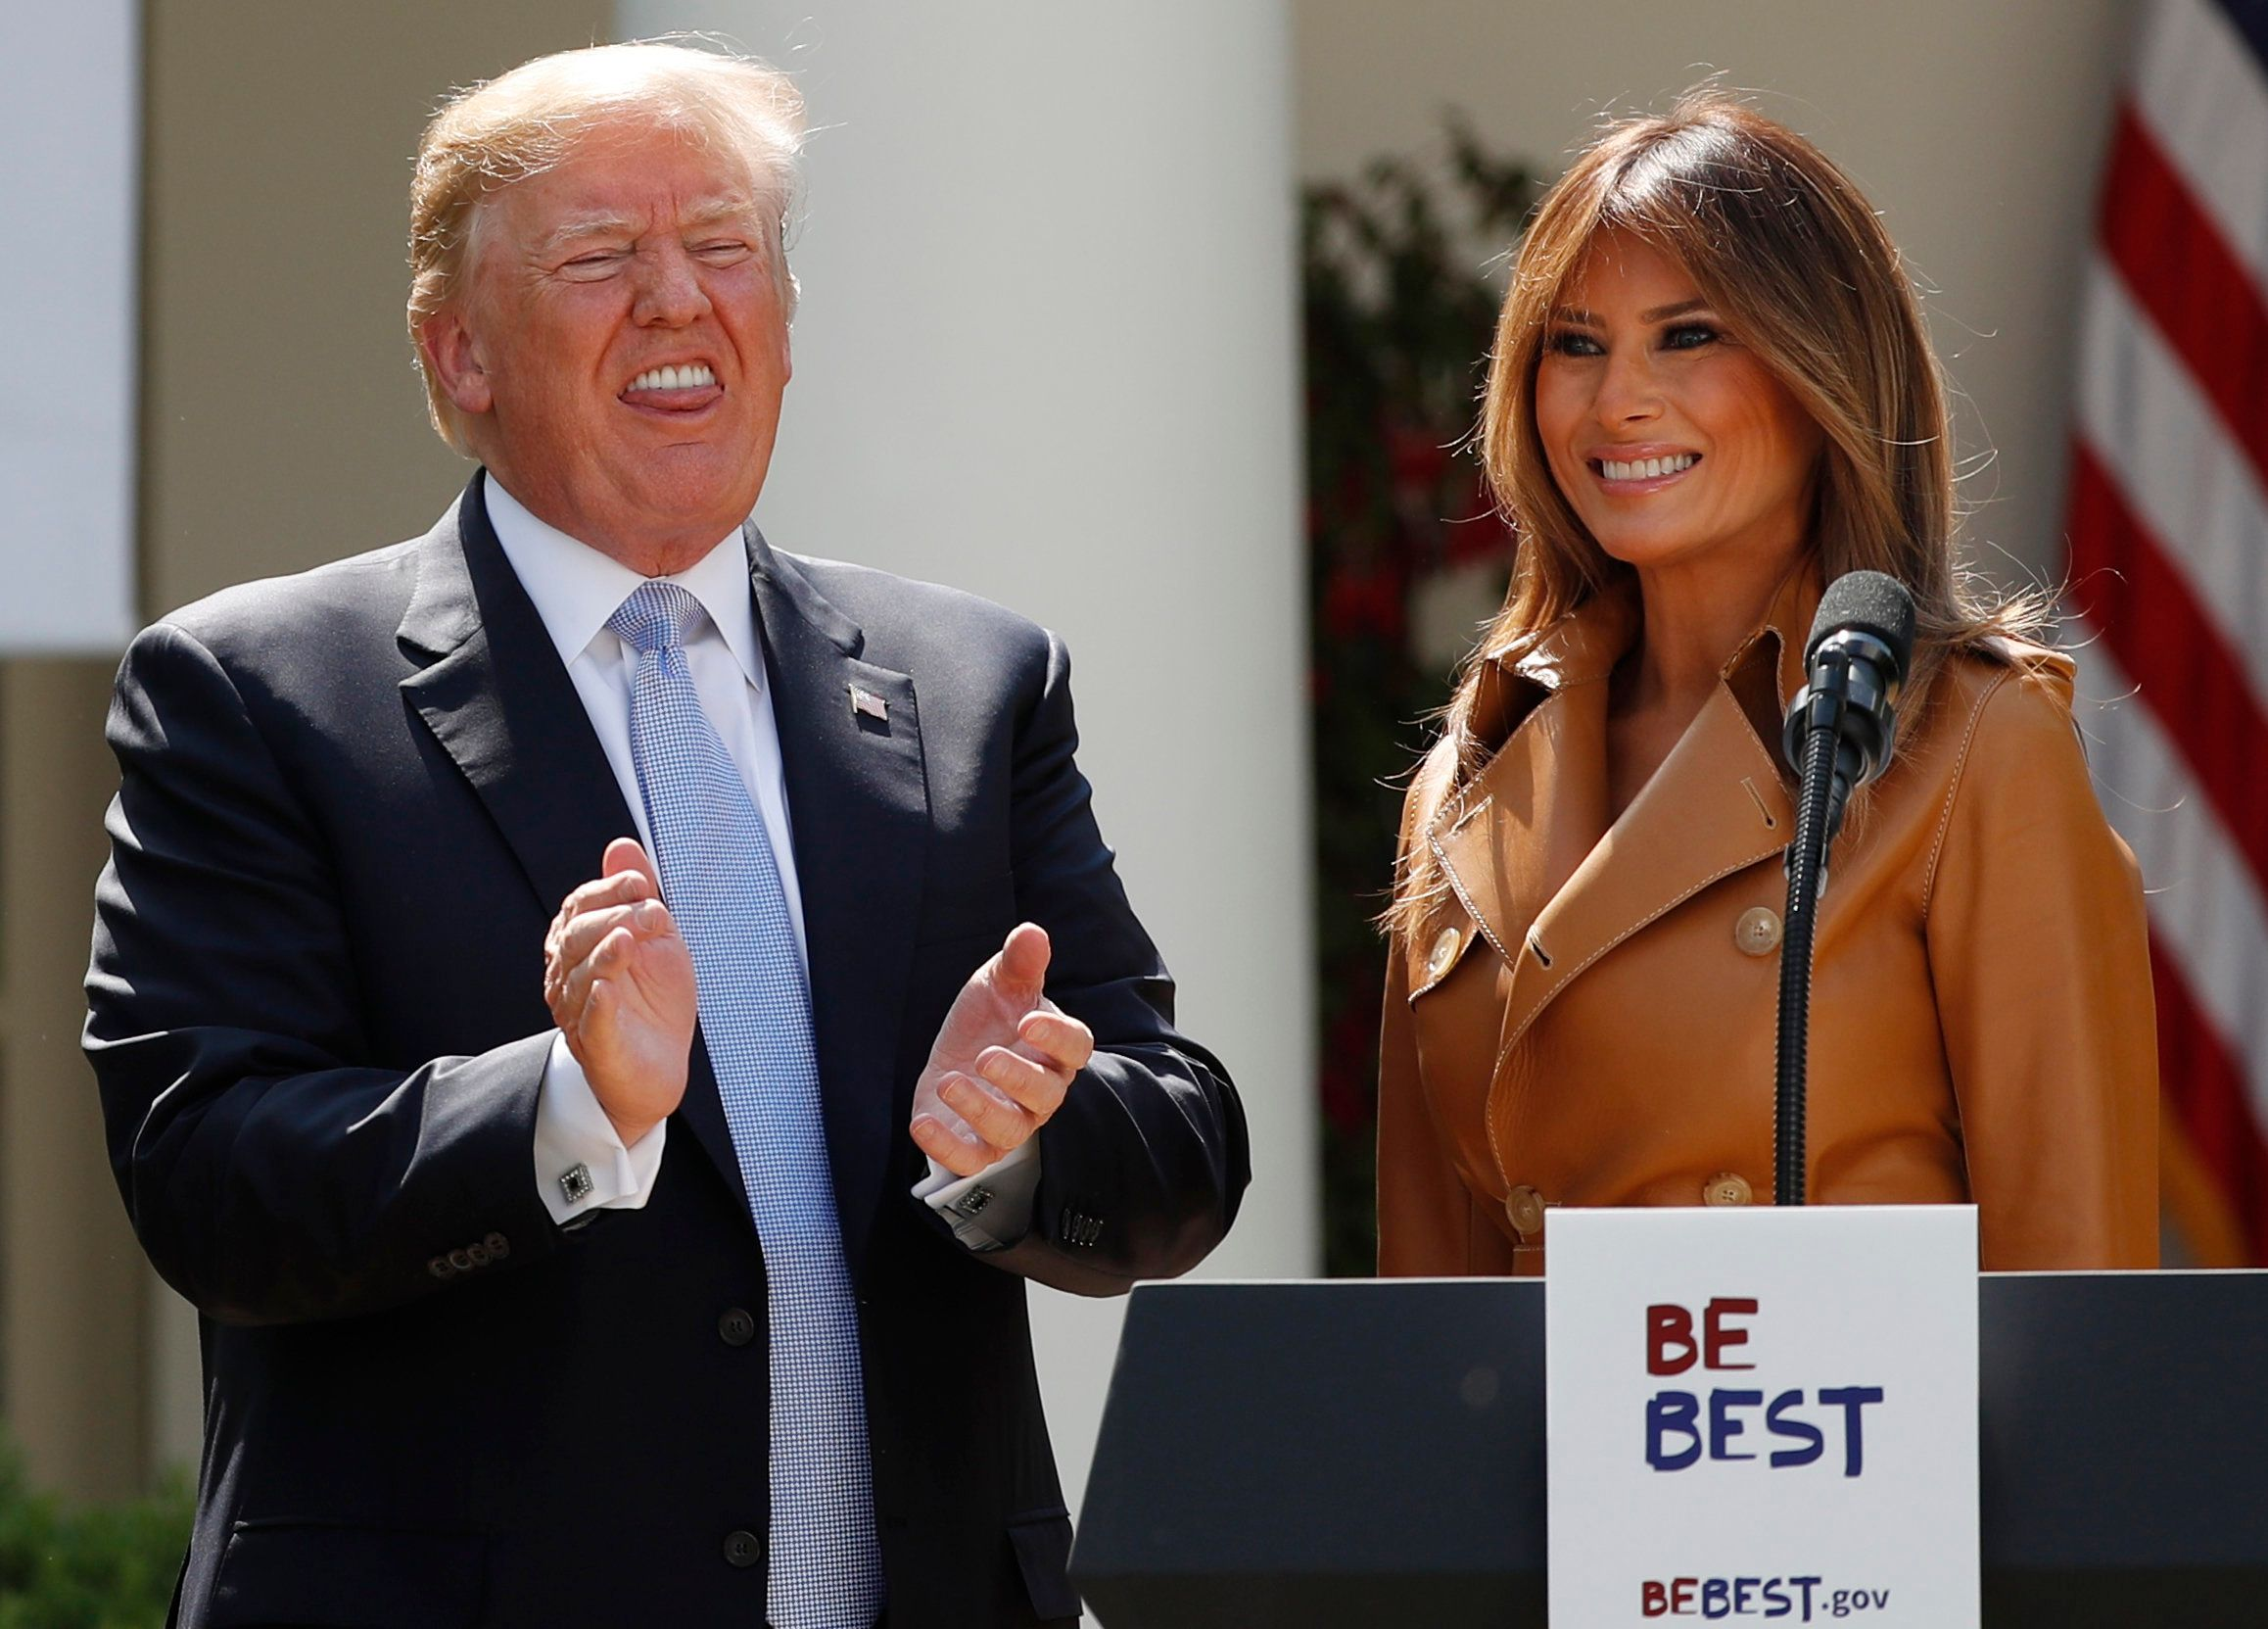 U.S. first lady Melania Trump stands with President Donald Trump, who applauds during the launch of the first lady's Be Best initiatives in the Rose Garden of the White House in Washington, U.S., May 7, 2018. REUTERS/Kevin Lamarque